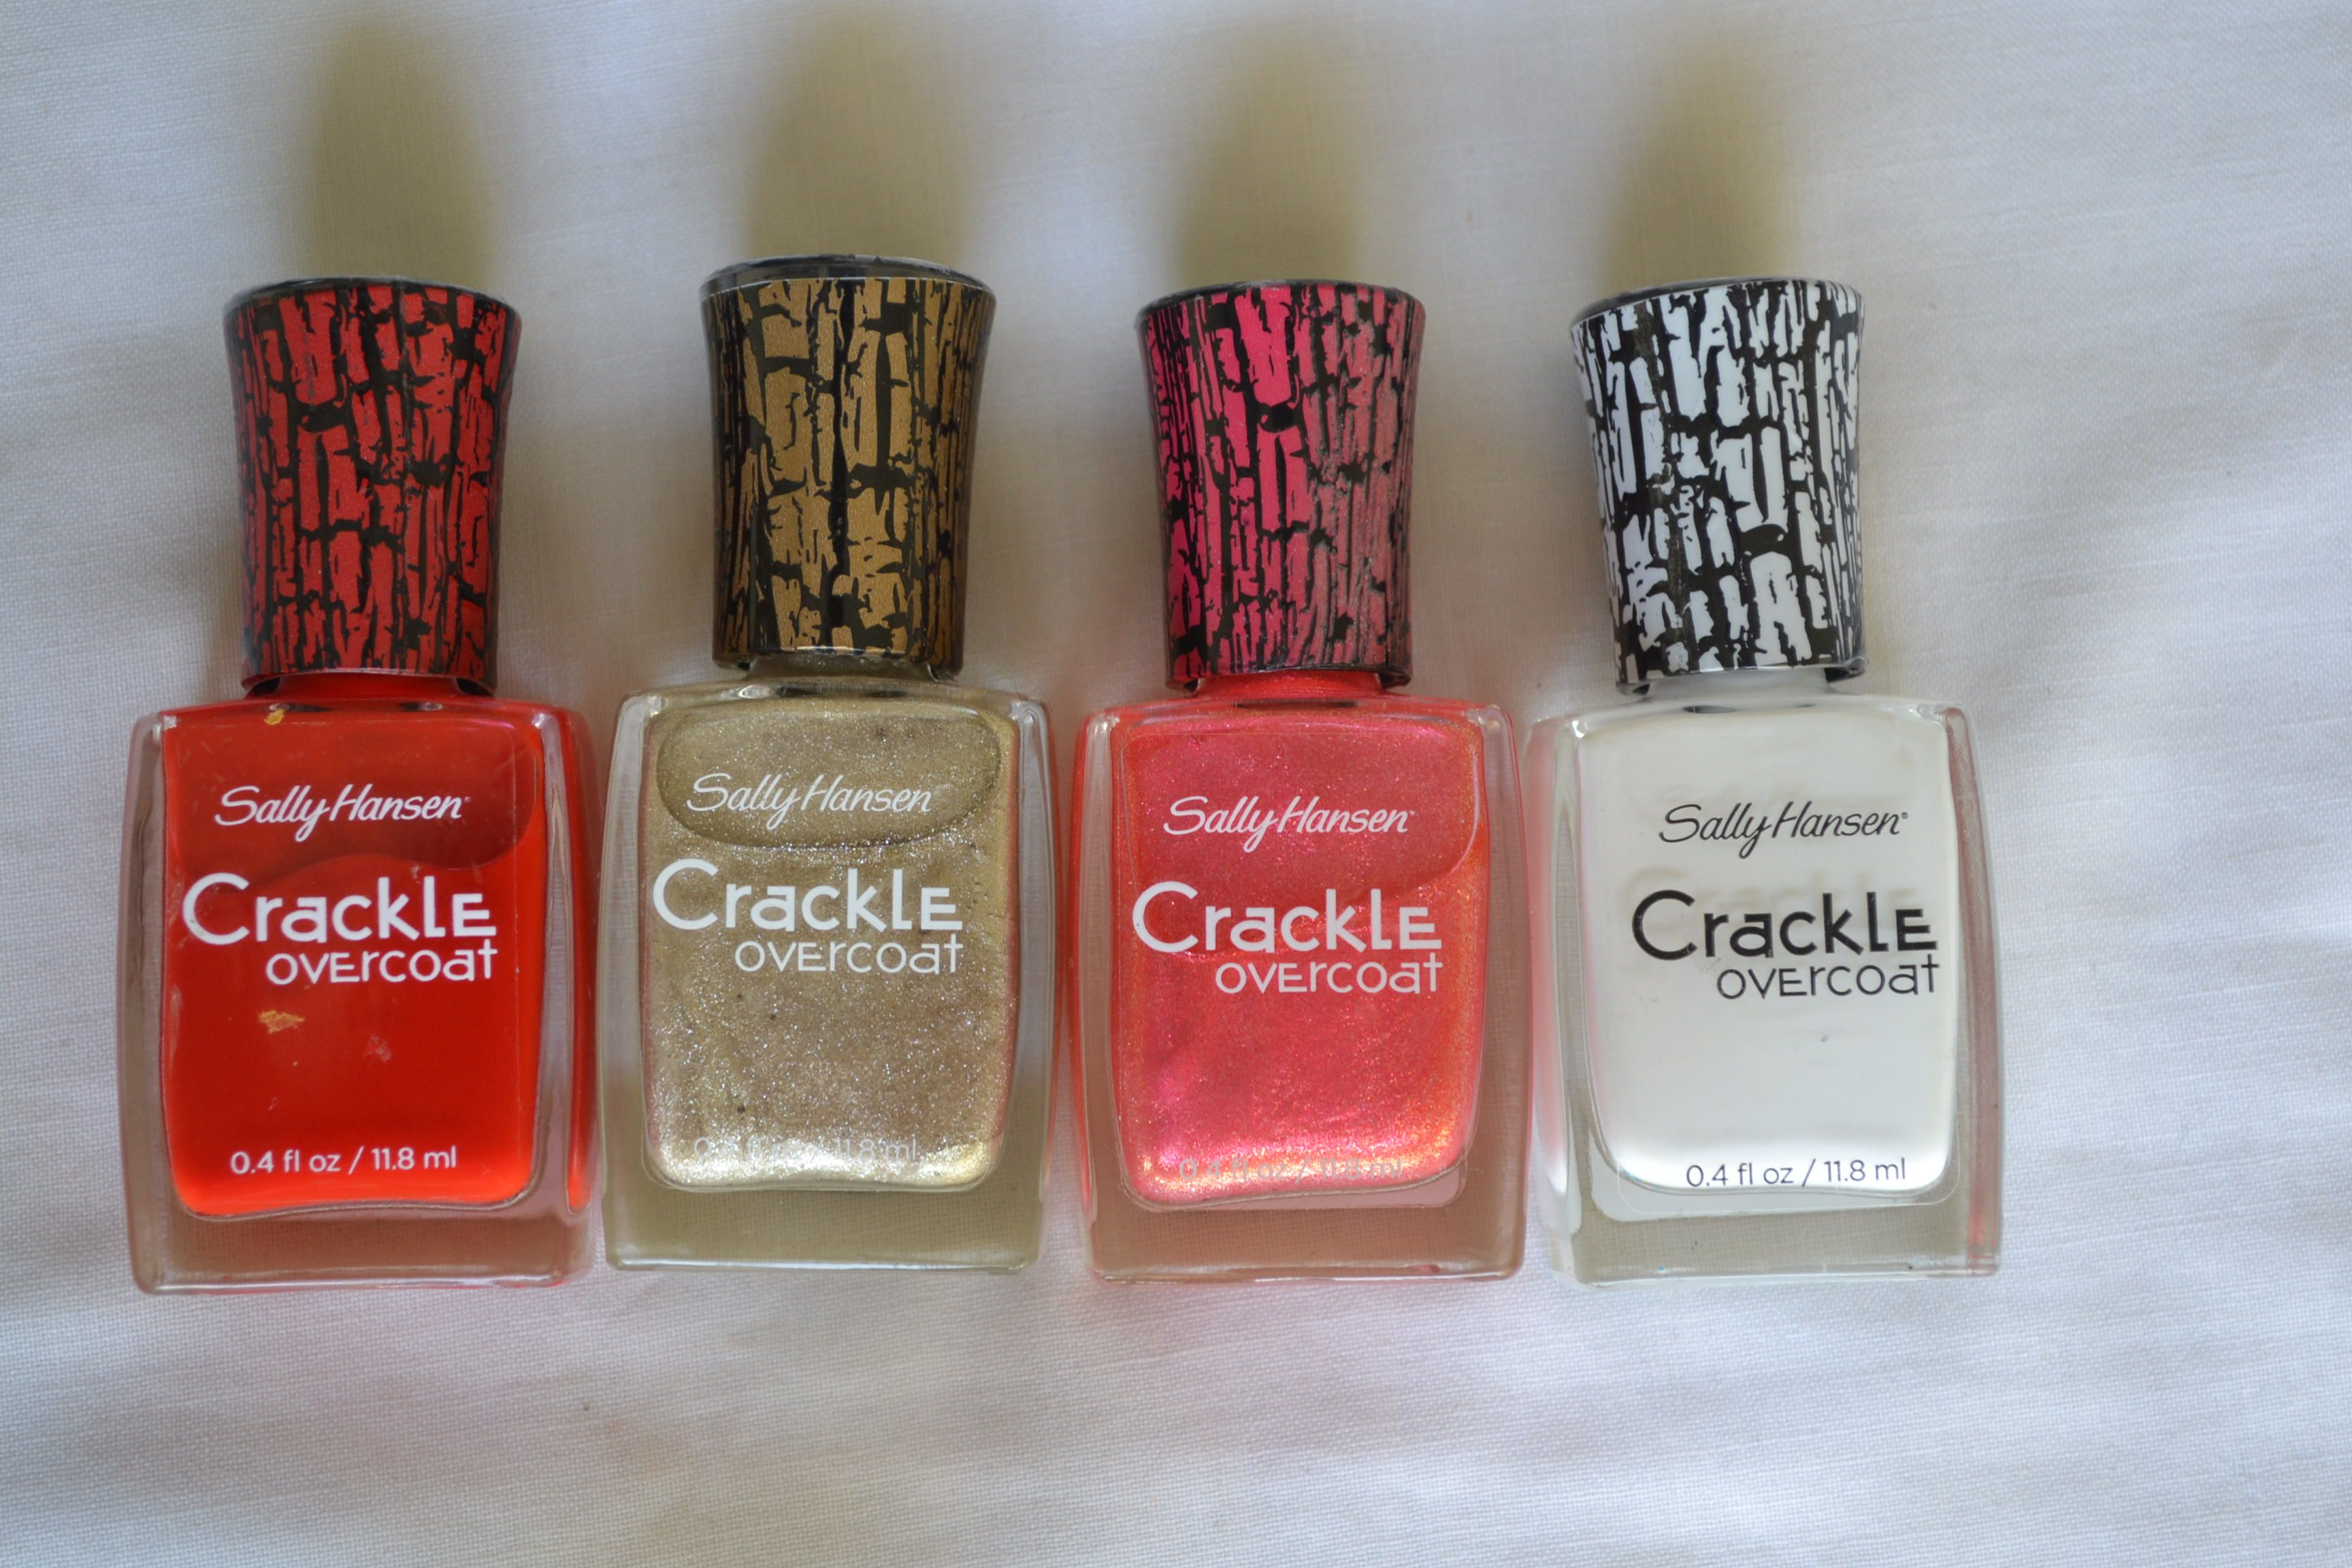 Sally Hansen crackle effect nail polish en colores brillantes (efecto craquelado). haz tu pedido en www.questra-i.com/etpn. Danos like en facebook.com/empiezatupropionegocio